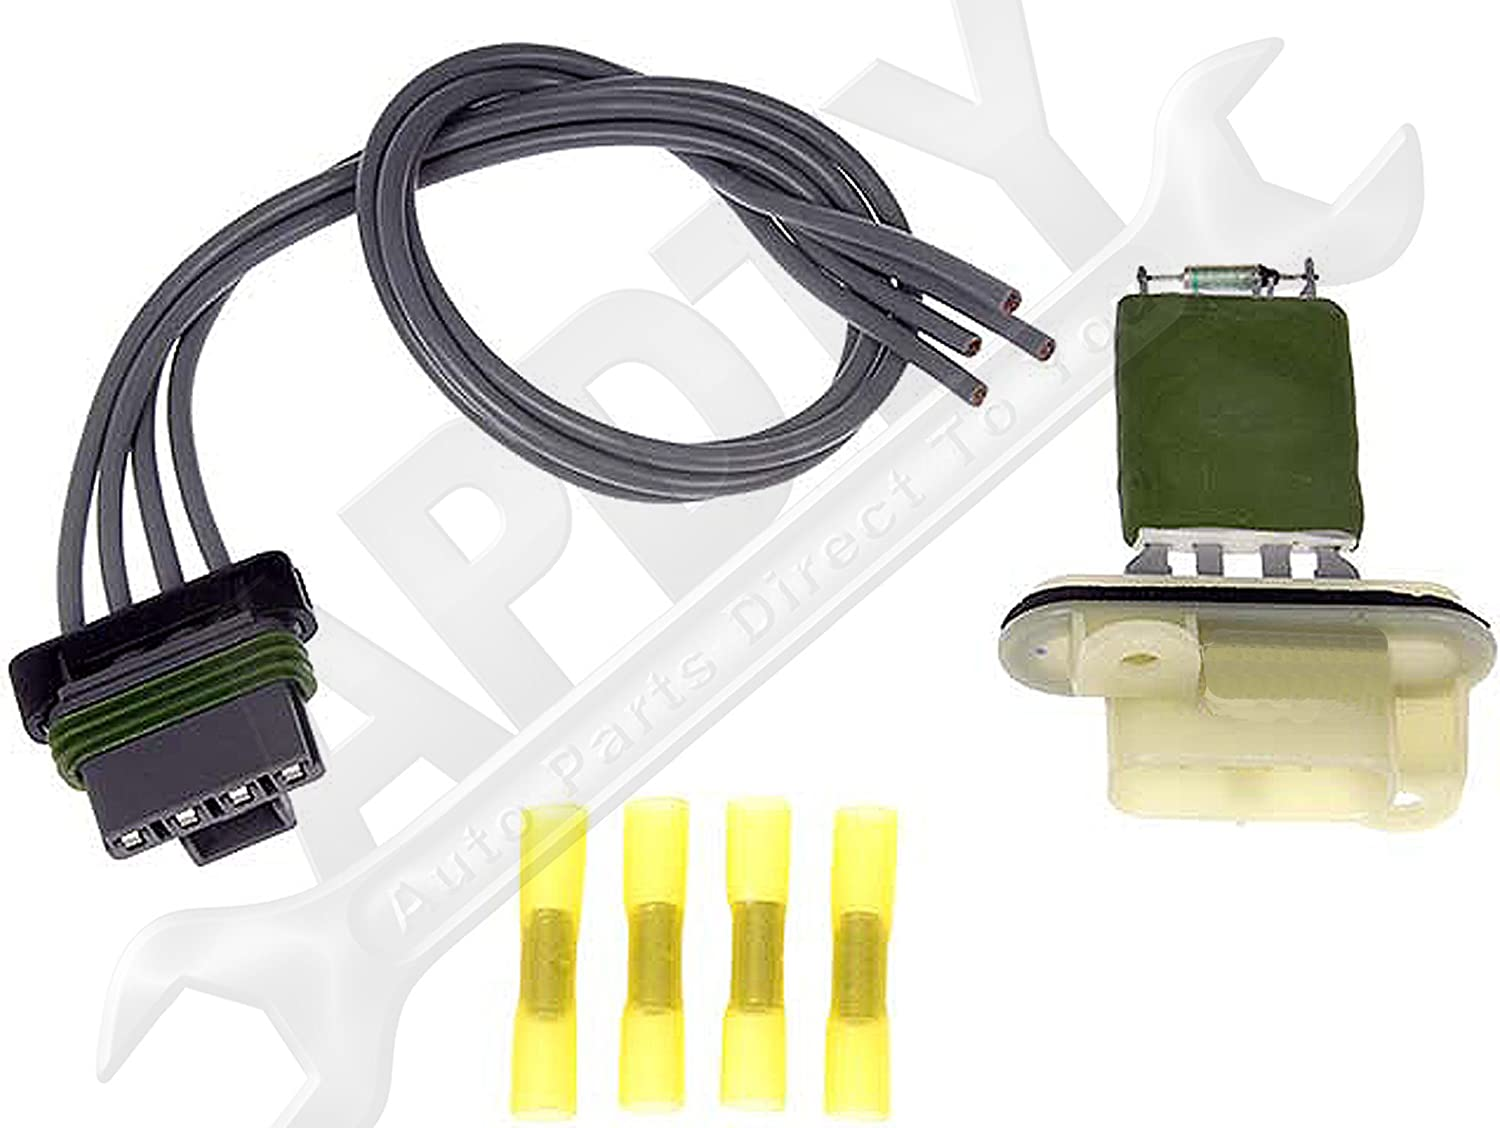 [SCHEMATICS_4ER]  Amazon.com: APDTY 084545 Blower Motor Switch Resistor Kit w/Wiring Harness  Pigtail Connector Fits 2004-2008 Chevrolet Colorado or GMC Canyon 2003-2006  SSR (Replaces 89018331, 15218254,15306189, PT1346, 15-80521): Automotive | 2008 Gmc Canyon Wiring |  | Amazon.com